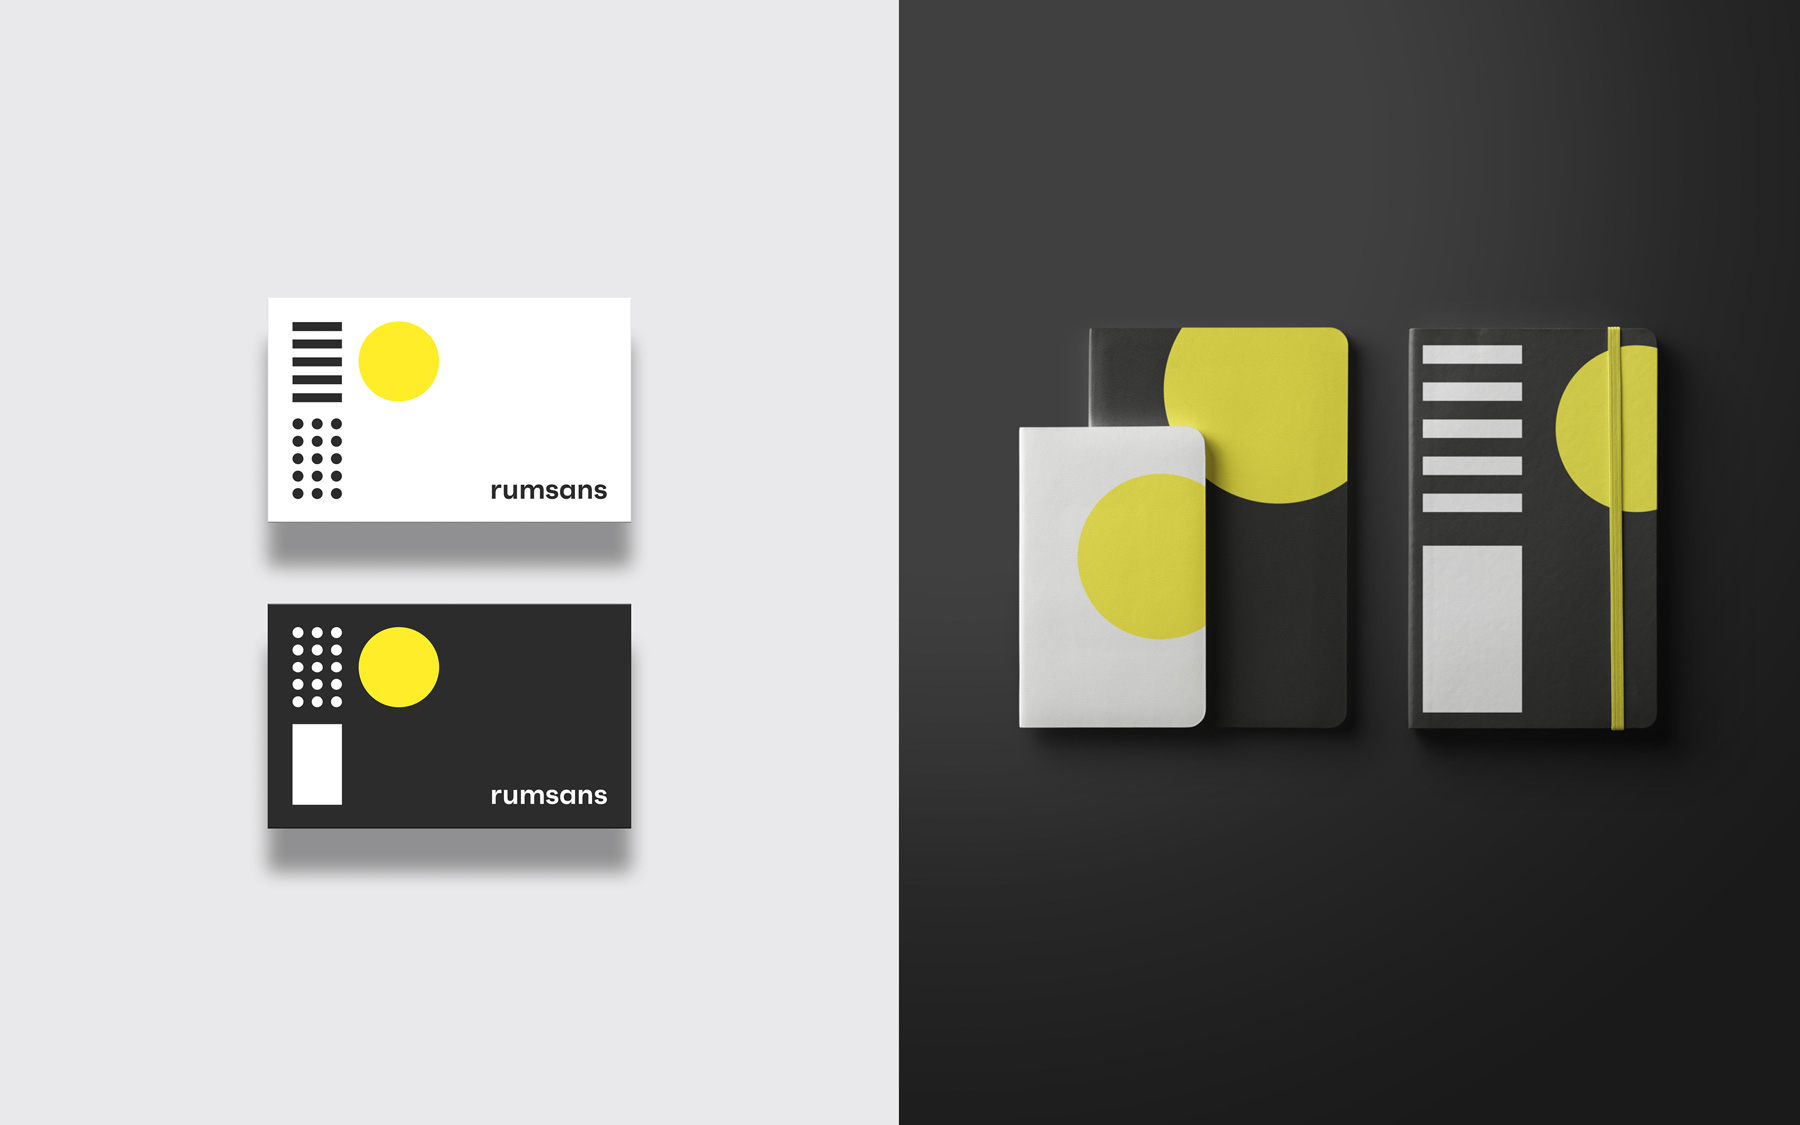 Business cards and note books printed with the Rumsans visual identity consisting of graphic elements in the colors black, white and yellow.